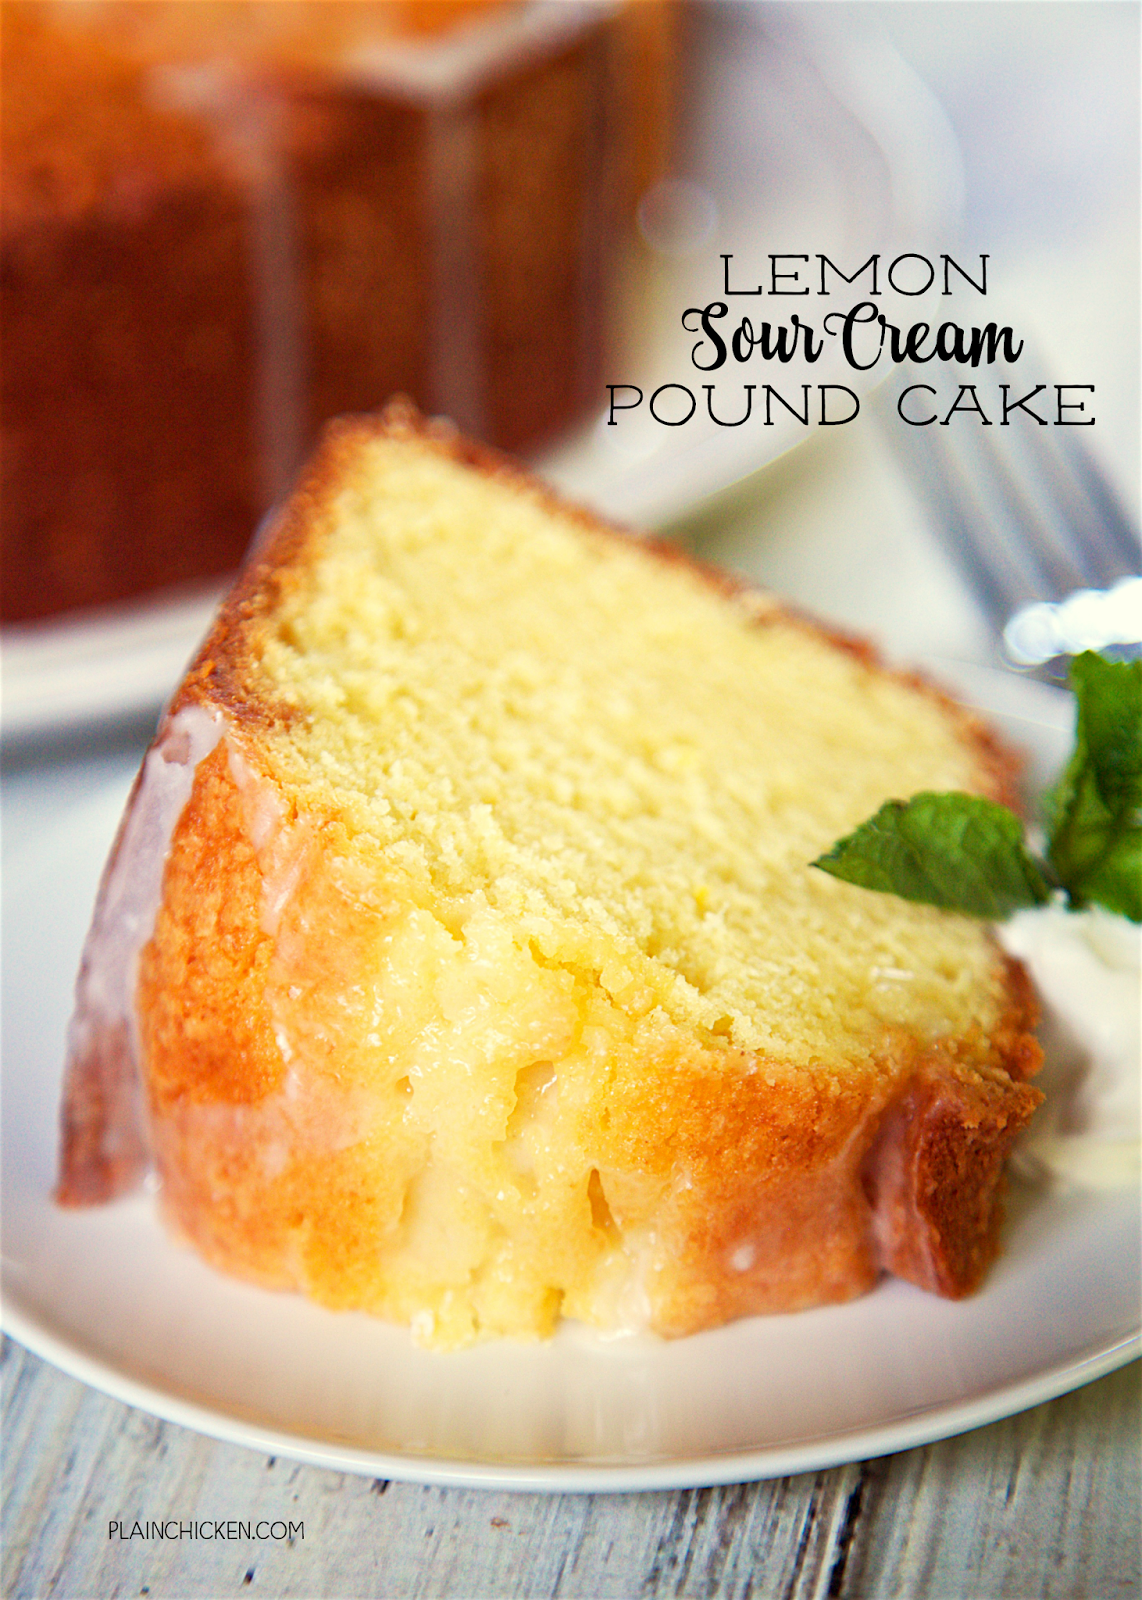 Lemon Sour Cream Pound Cake The Most Amazing Pound Cake I Ve Ever Eaten So Easy And Delicious Top The Cake Sour Cream Pound Cake Yummy Cakes Lemon Desserts